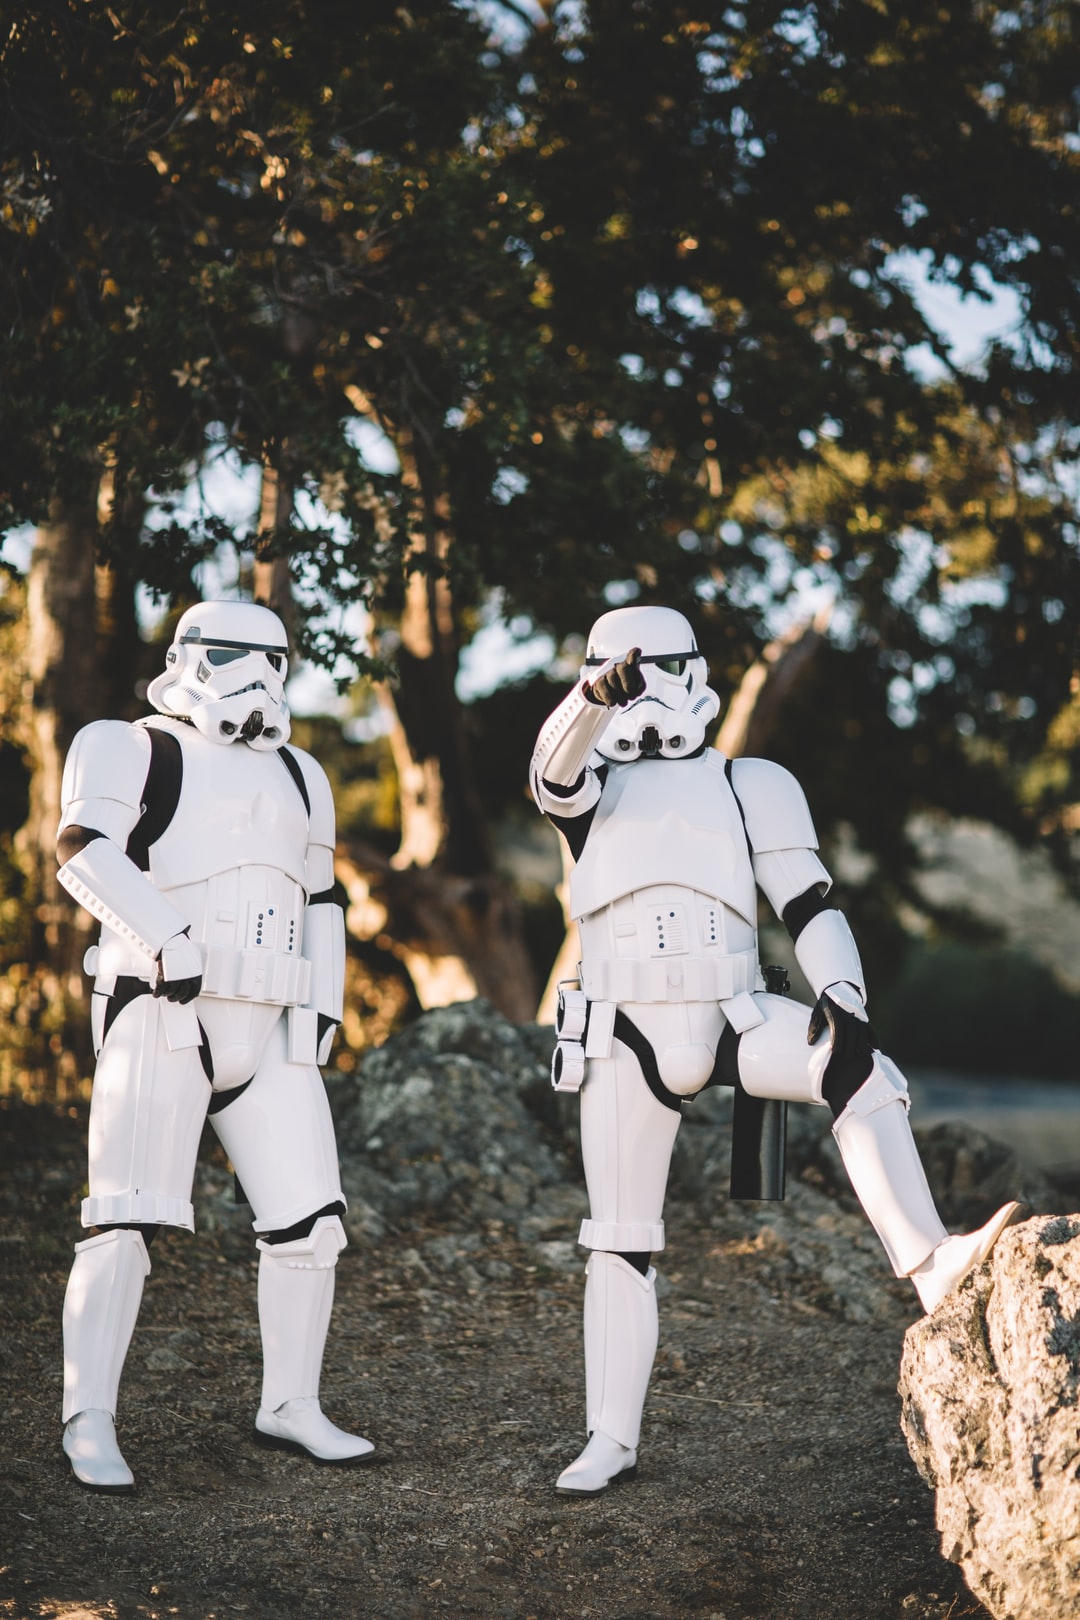 Two Stormtroopers posing